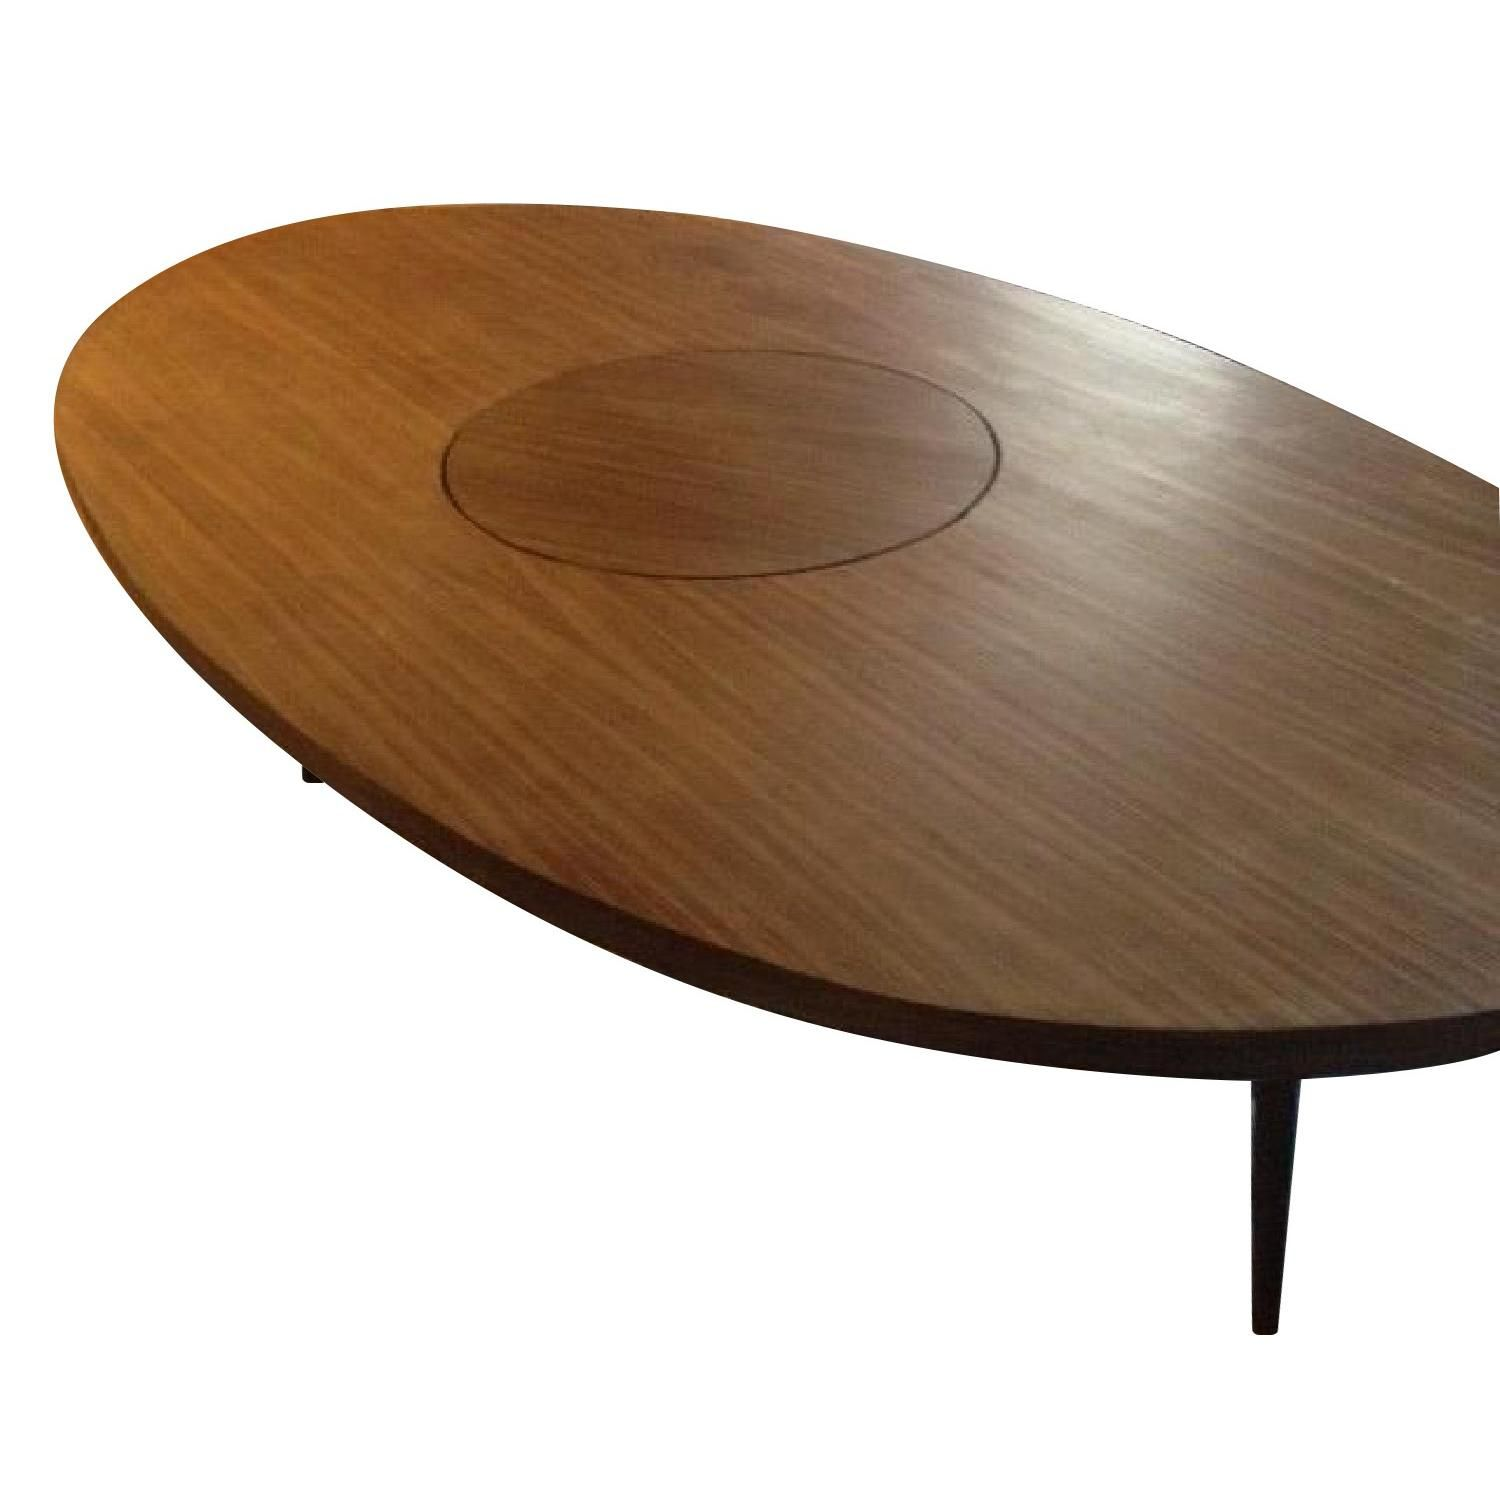 Custom Walnut Oval Table W/ Lazy Susan